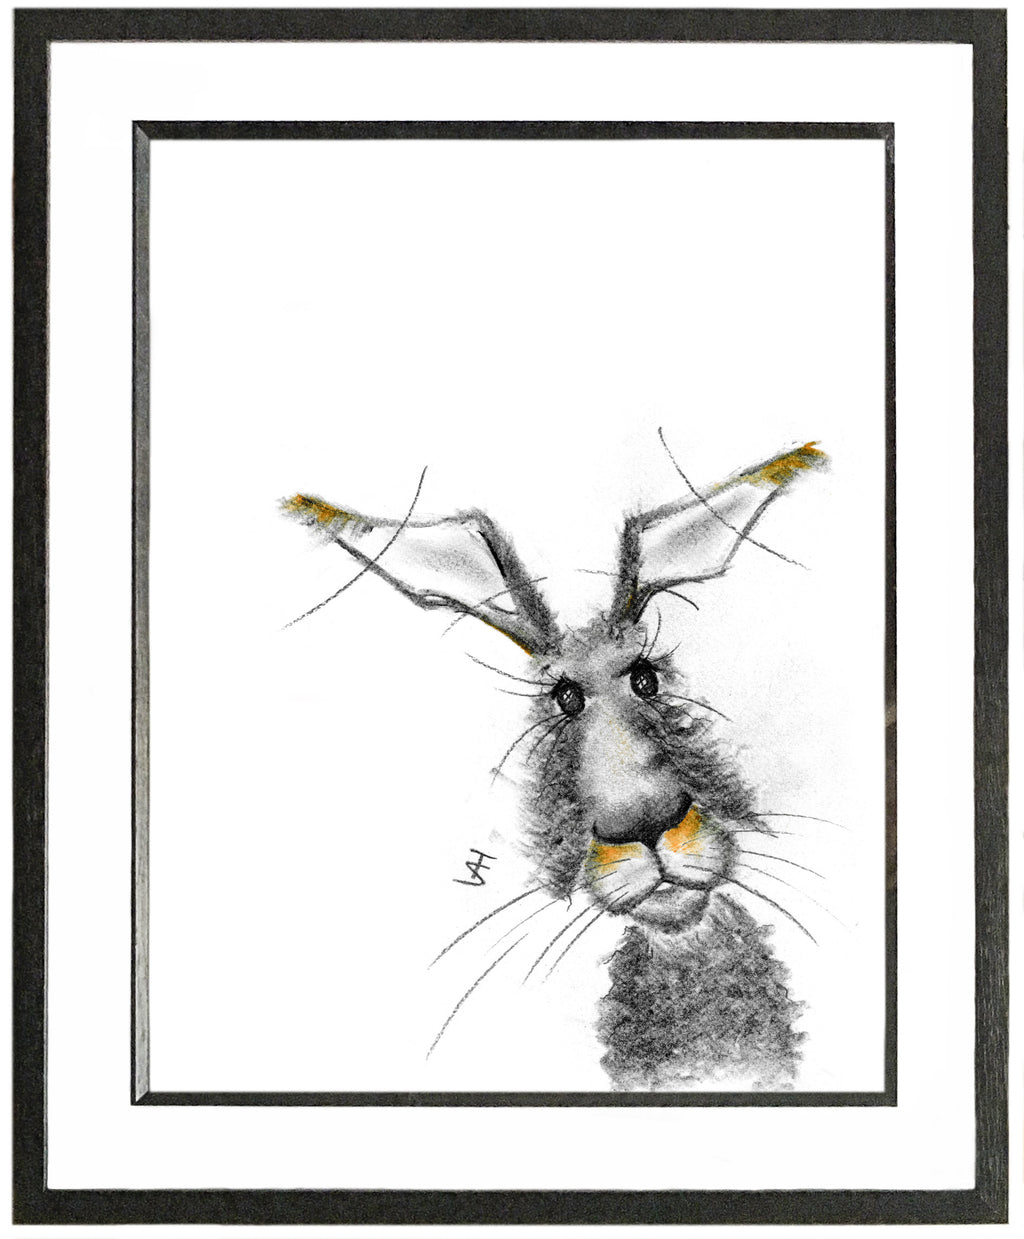 Matilda Framed Hare Illustration | GORGEOUS GEORGE